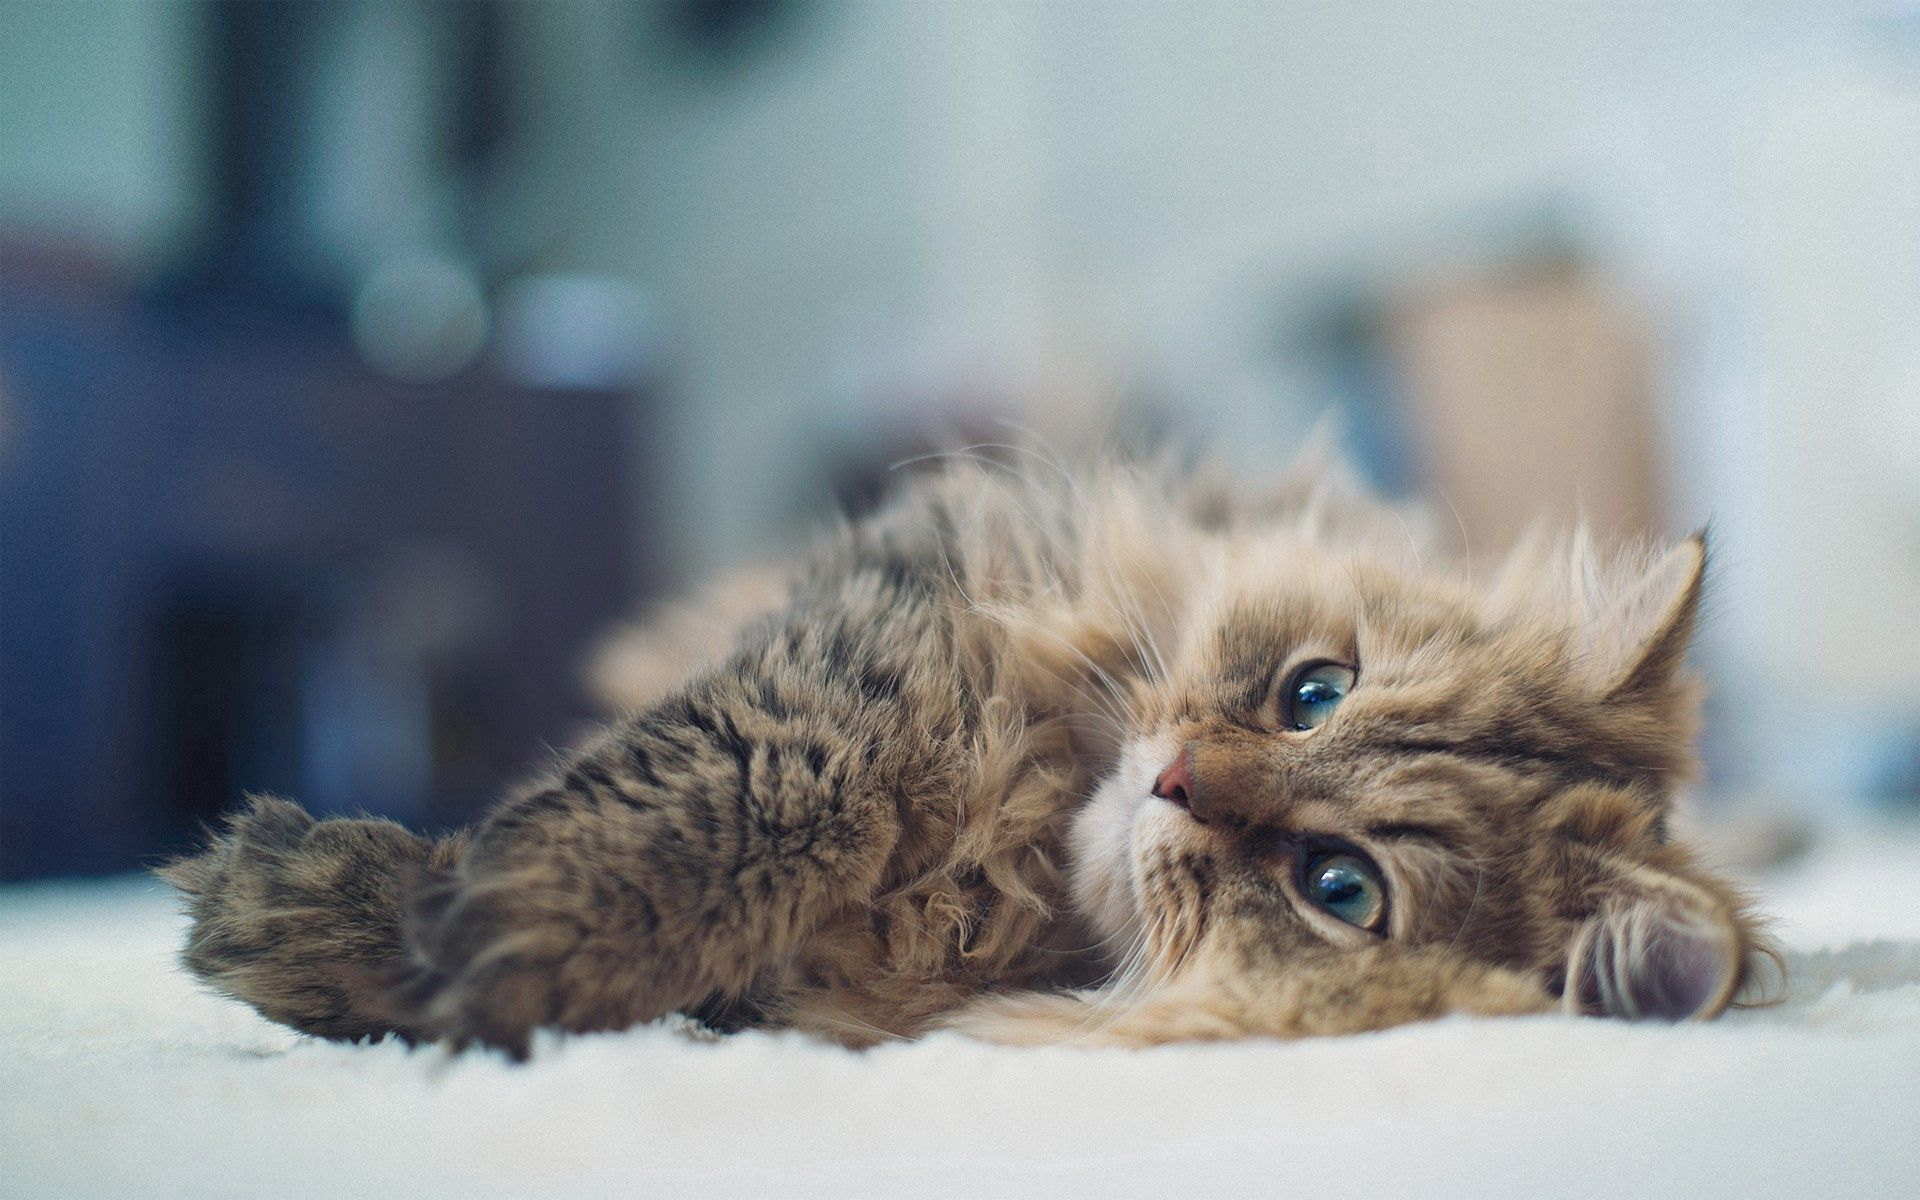 153639 download wallpaper Cat, Animals, Fluffy, To Lie Down, Lie screensavers and pictures for free